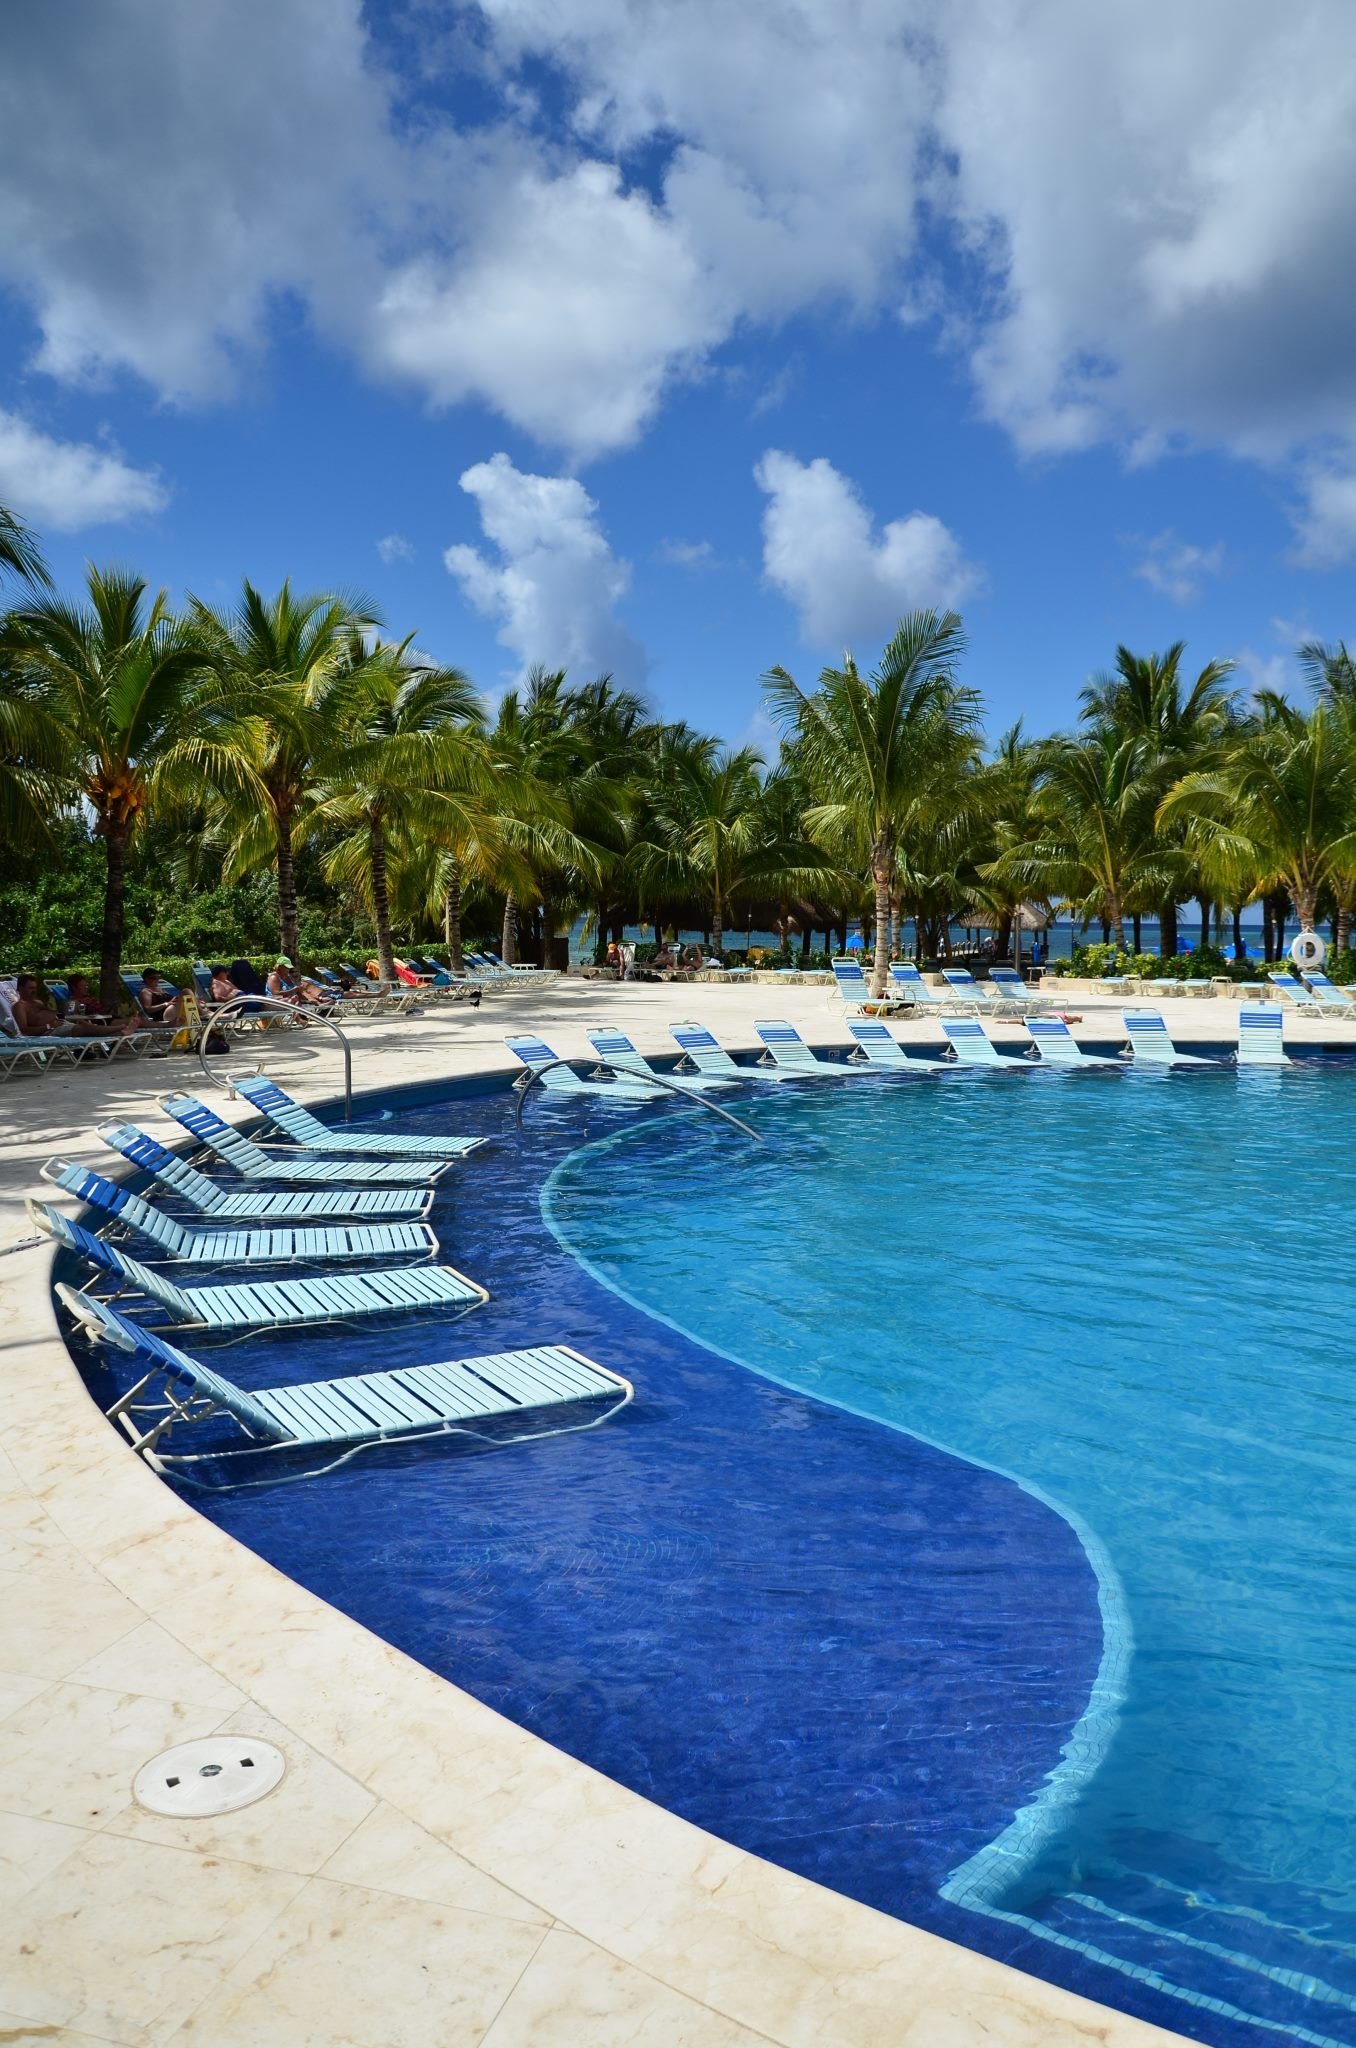 the description of the cozumel paradise in mexico Paradise beach cozumel, cozumel, quintana roo, mexico 20k likes lounge  chair rental only $3 usd please check out our menu and facilities at.